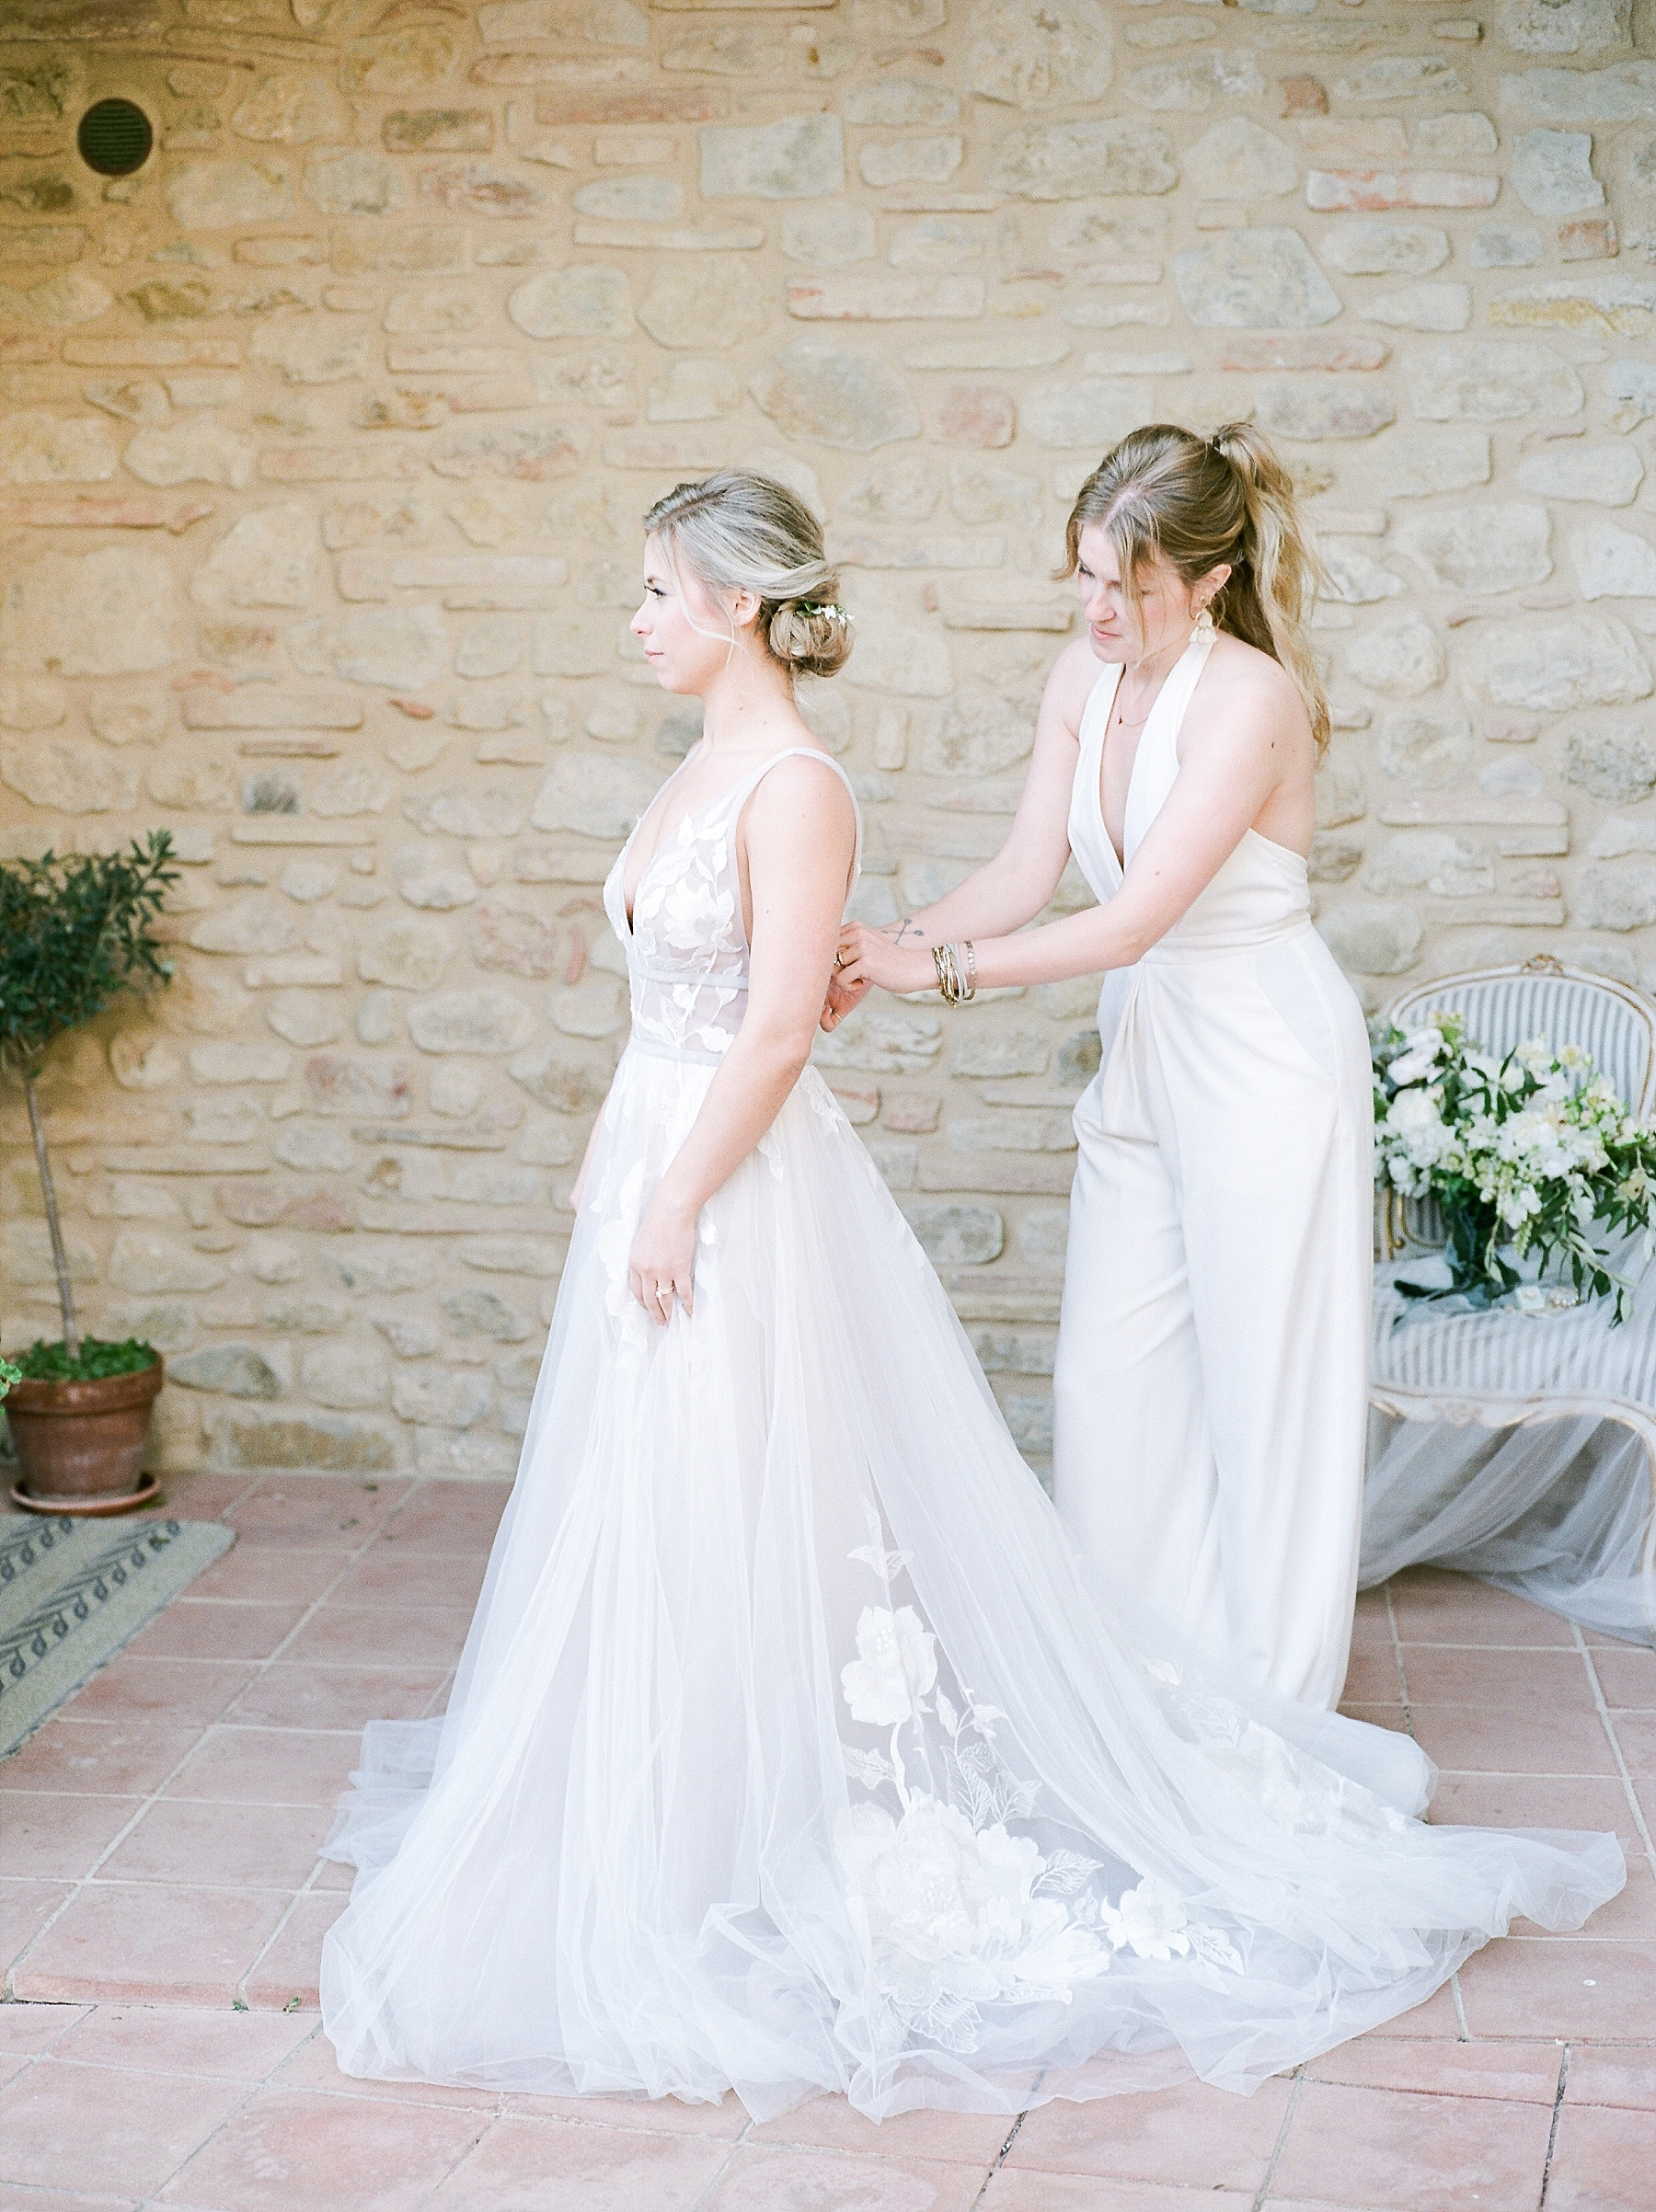 All White Destination Wedding in the Hills of Tuscany Italy at Estate Borgo Petrognano by Kelsi Kliethermes Photography_0037.jpg